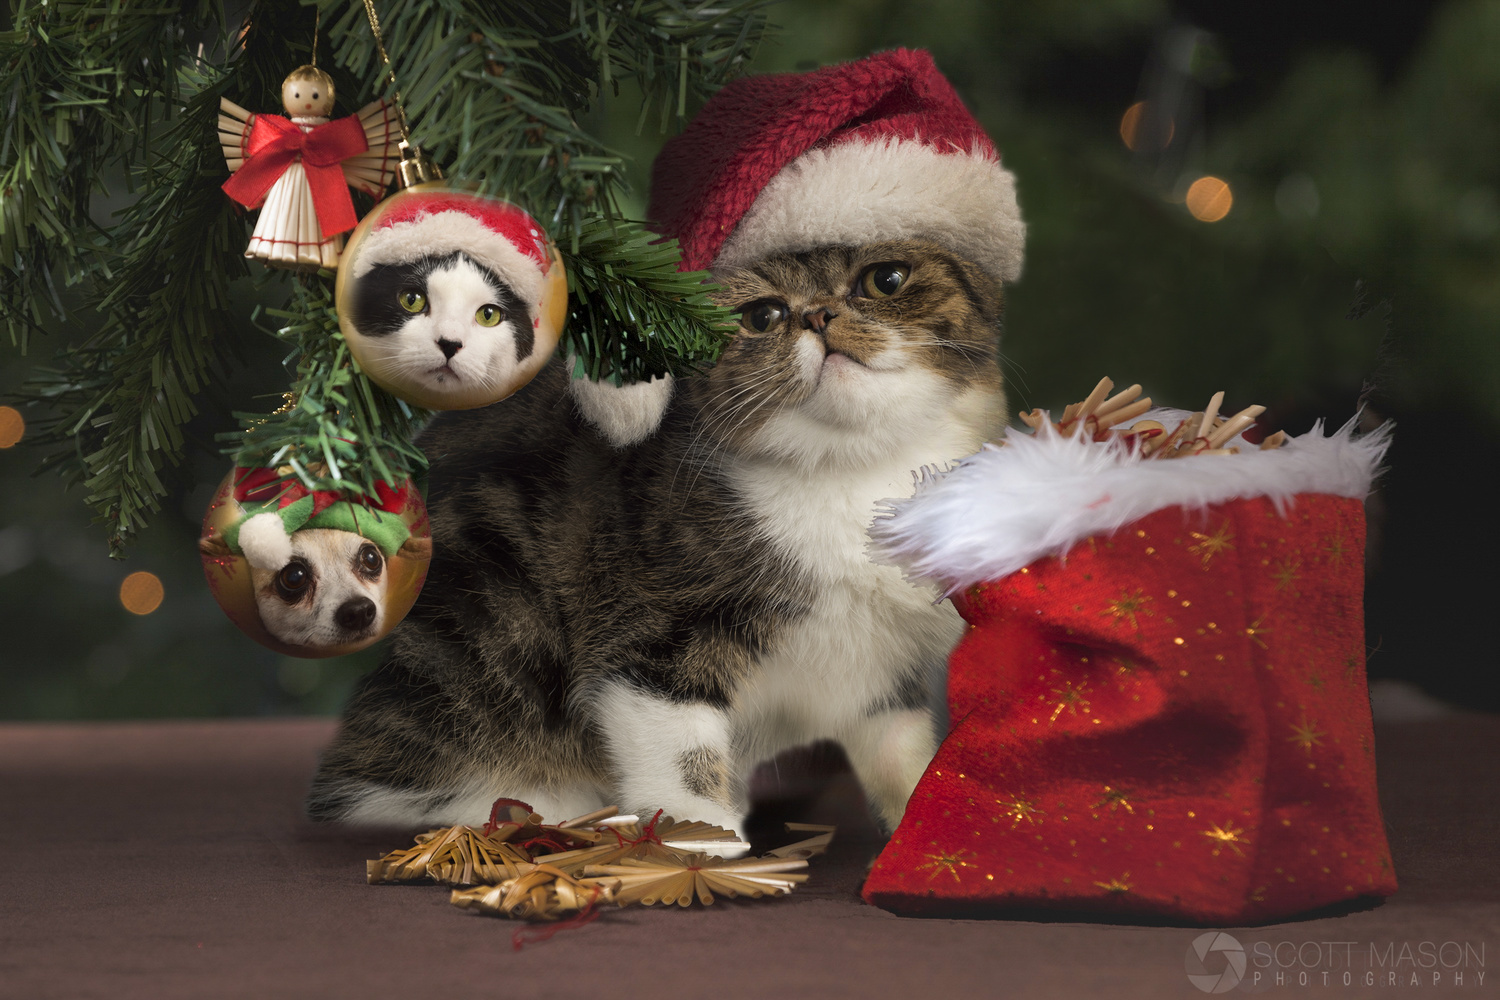 a composite image showing a cat under a christmas tree, with ornaments of pet faces